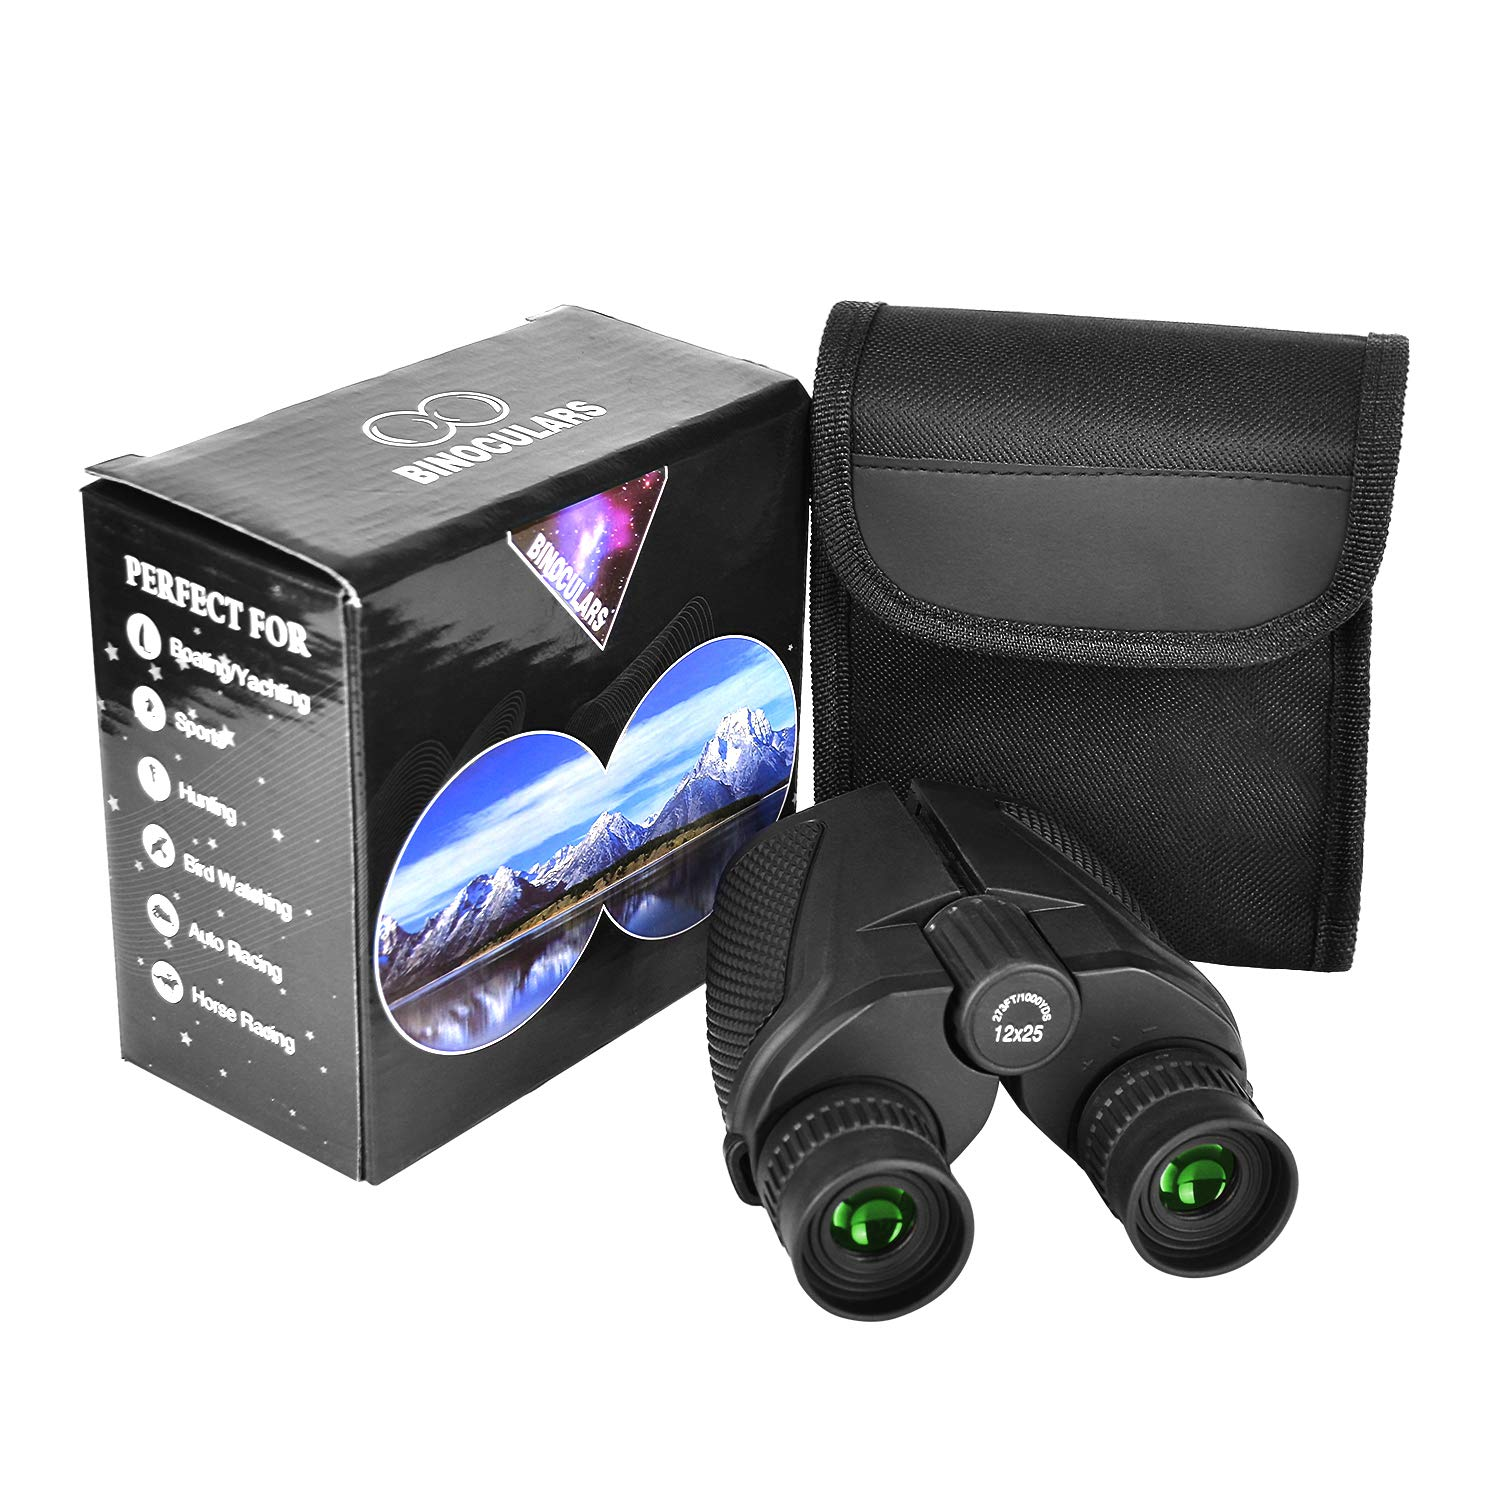 12X25 High Power Binoculars, Compact but Large Eyepiece, Binoculars Telescope with Multilayer-Coated Lenses for Adult Bird Watching Astronomy Football Safari Sightseeing Climb